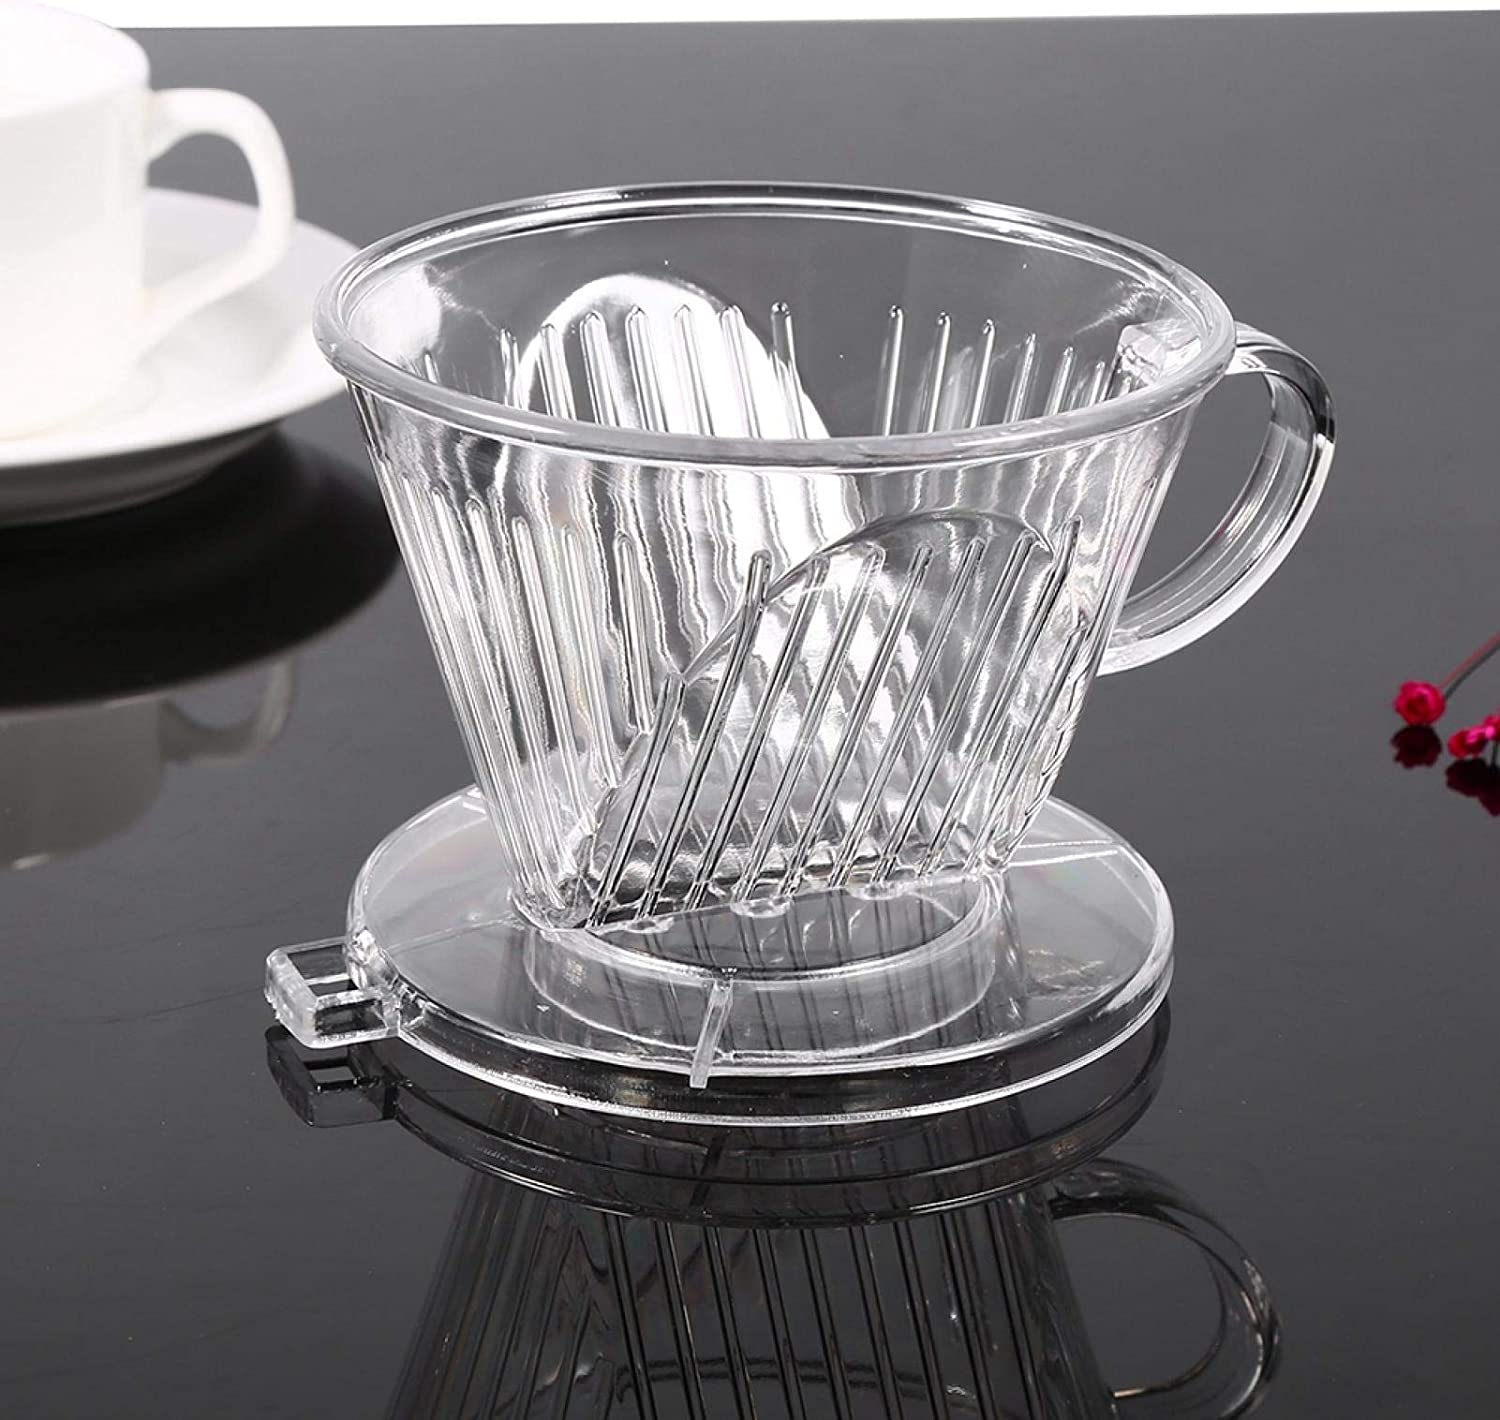 KIRSTHM Transparent Reusable Classic Coffee Filter Shaped Los Angeles Mall Co Resin Cone-